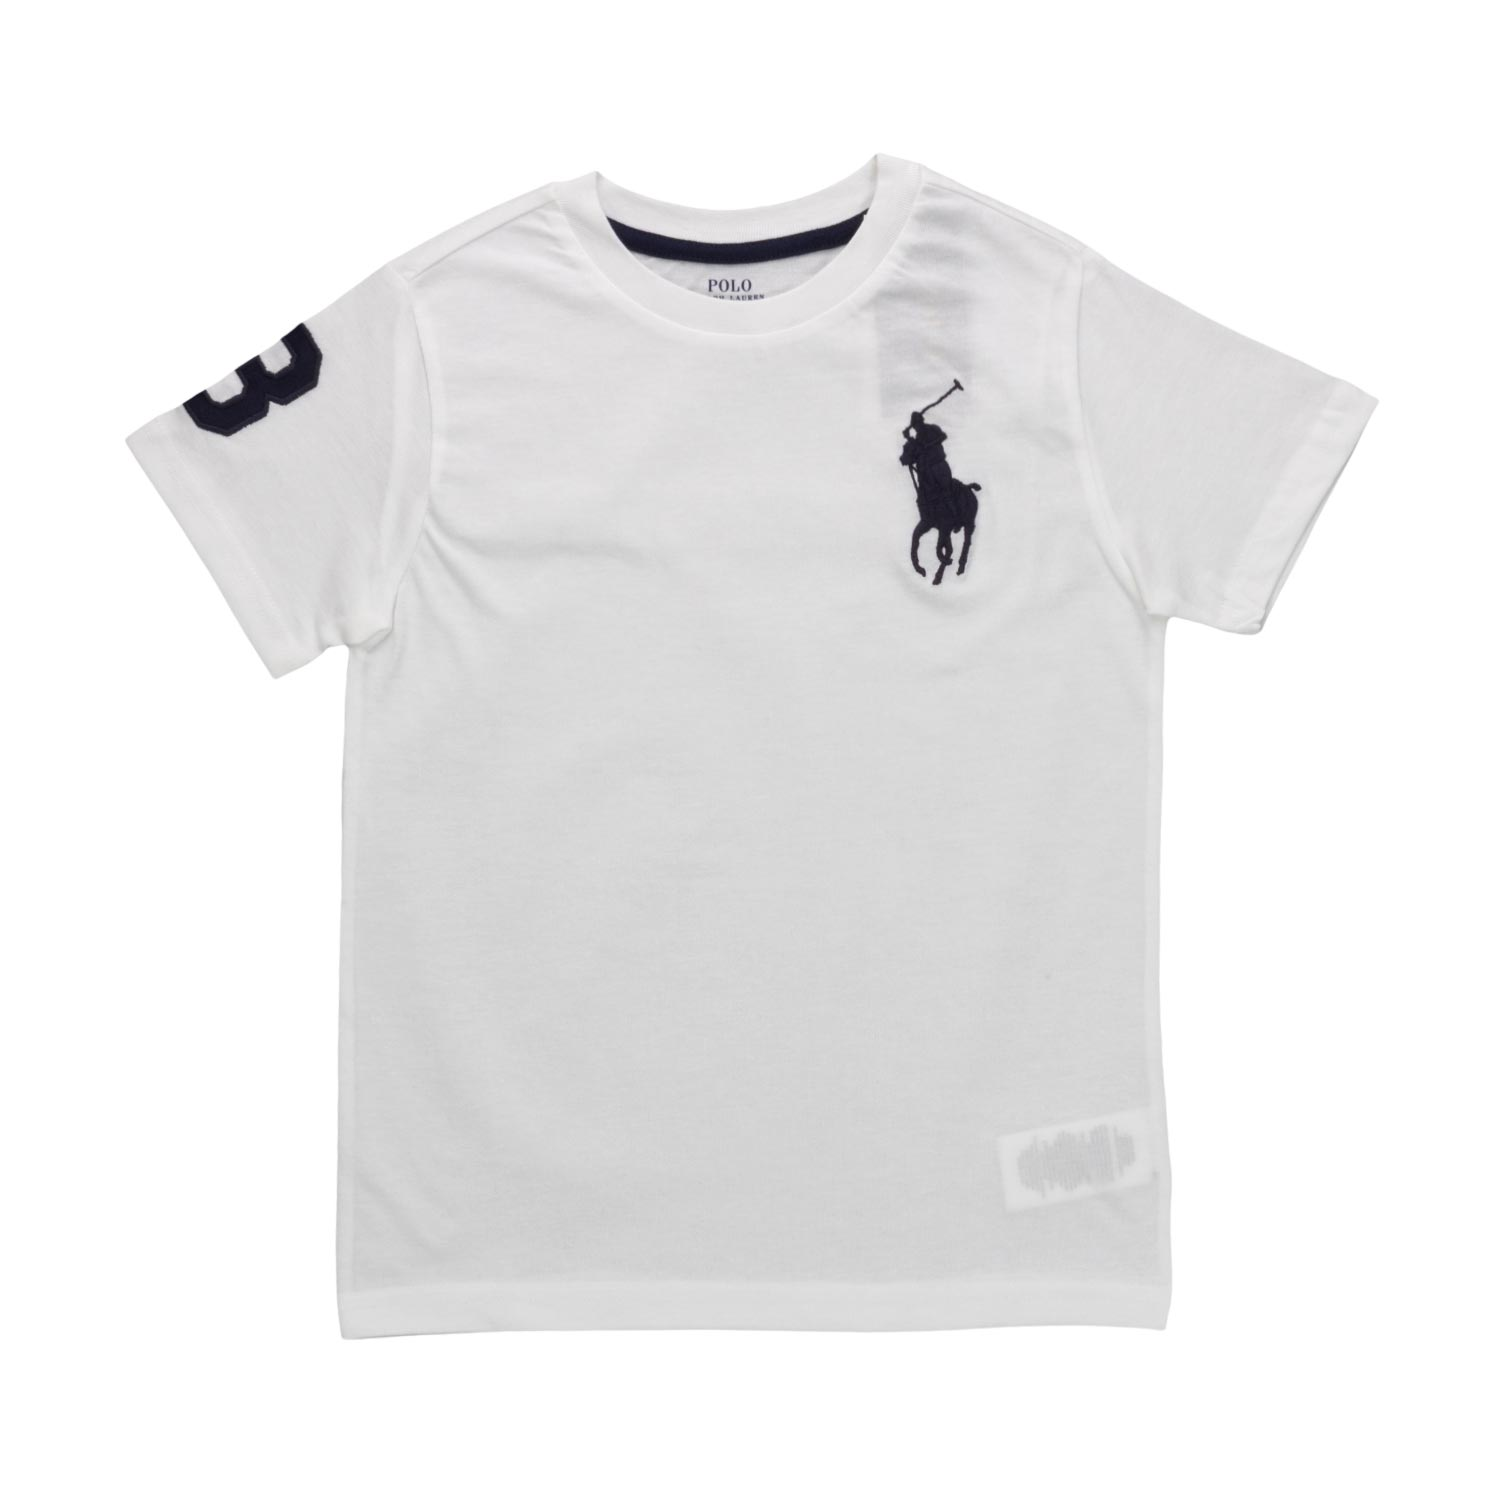 17a83ac671 T-Shirt Big Pony Bambino Teen